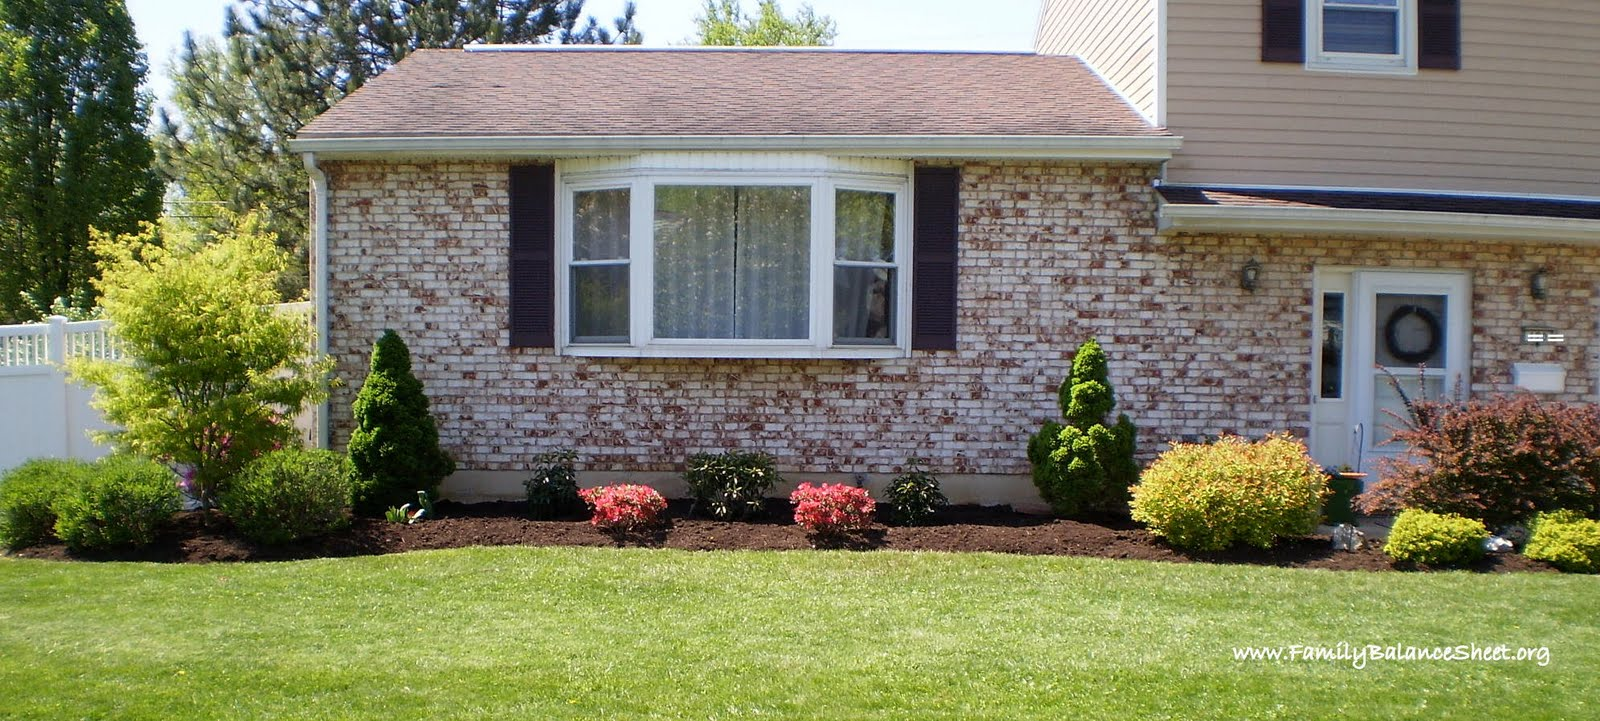 15 tips to help you design your front yard save money too for New home front yard landscaping